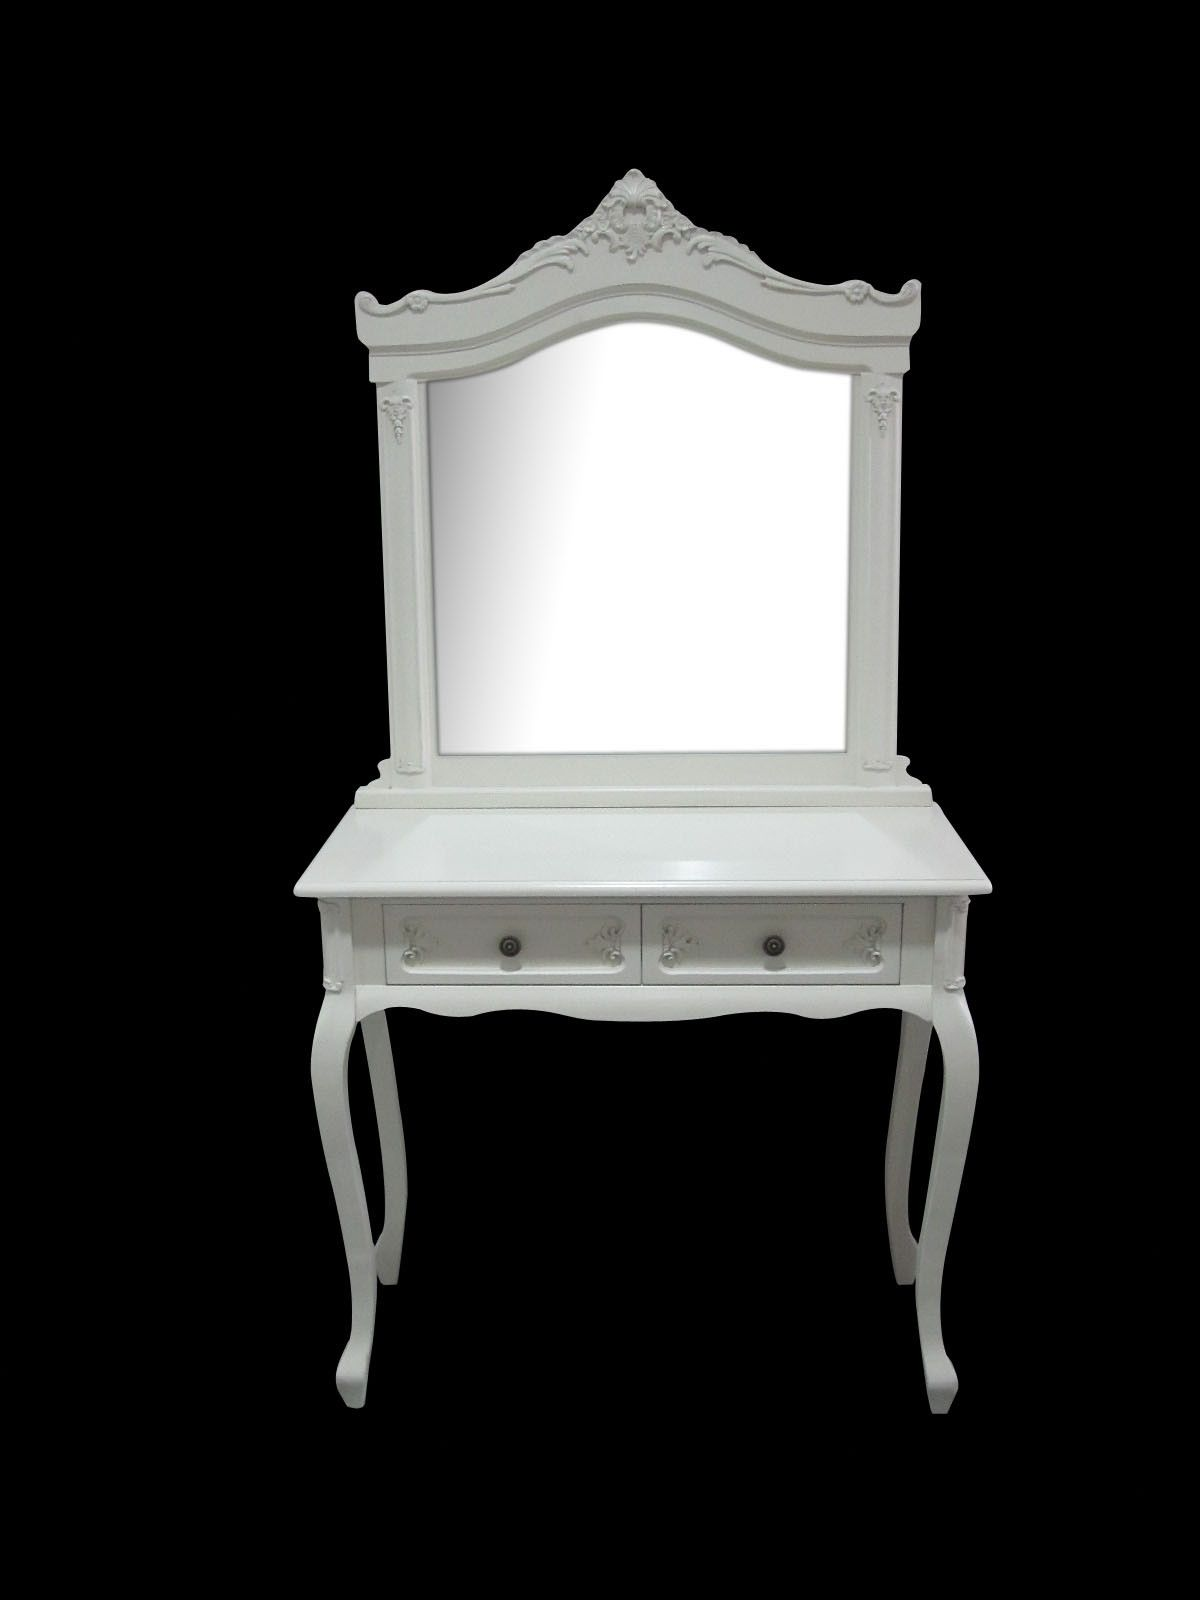 Dressing Table Australia Classic French Dressing Table Wayfair Australia For The Home